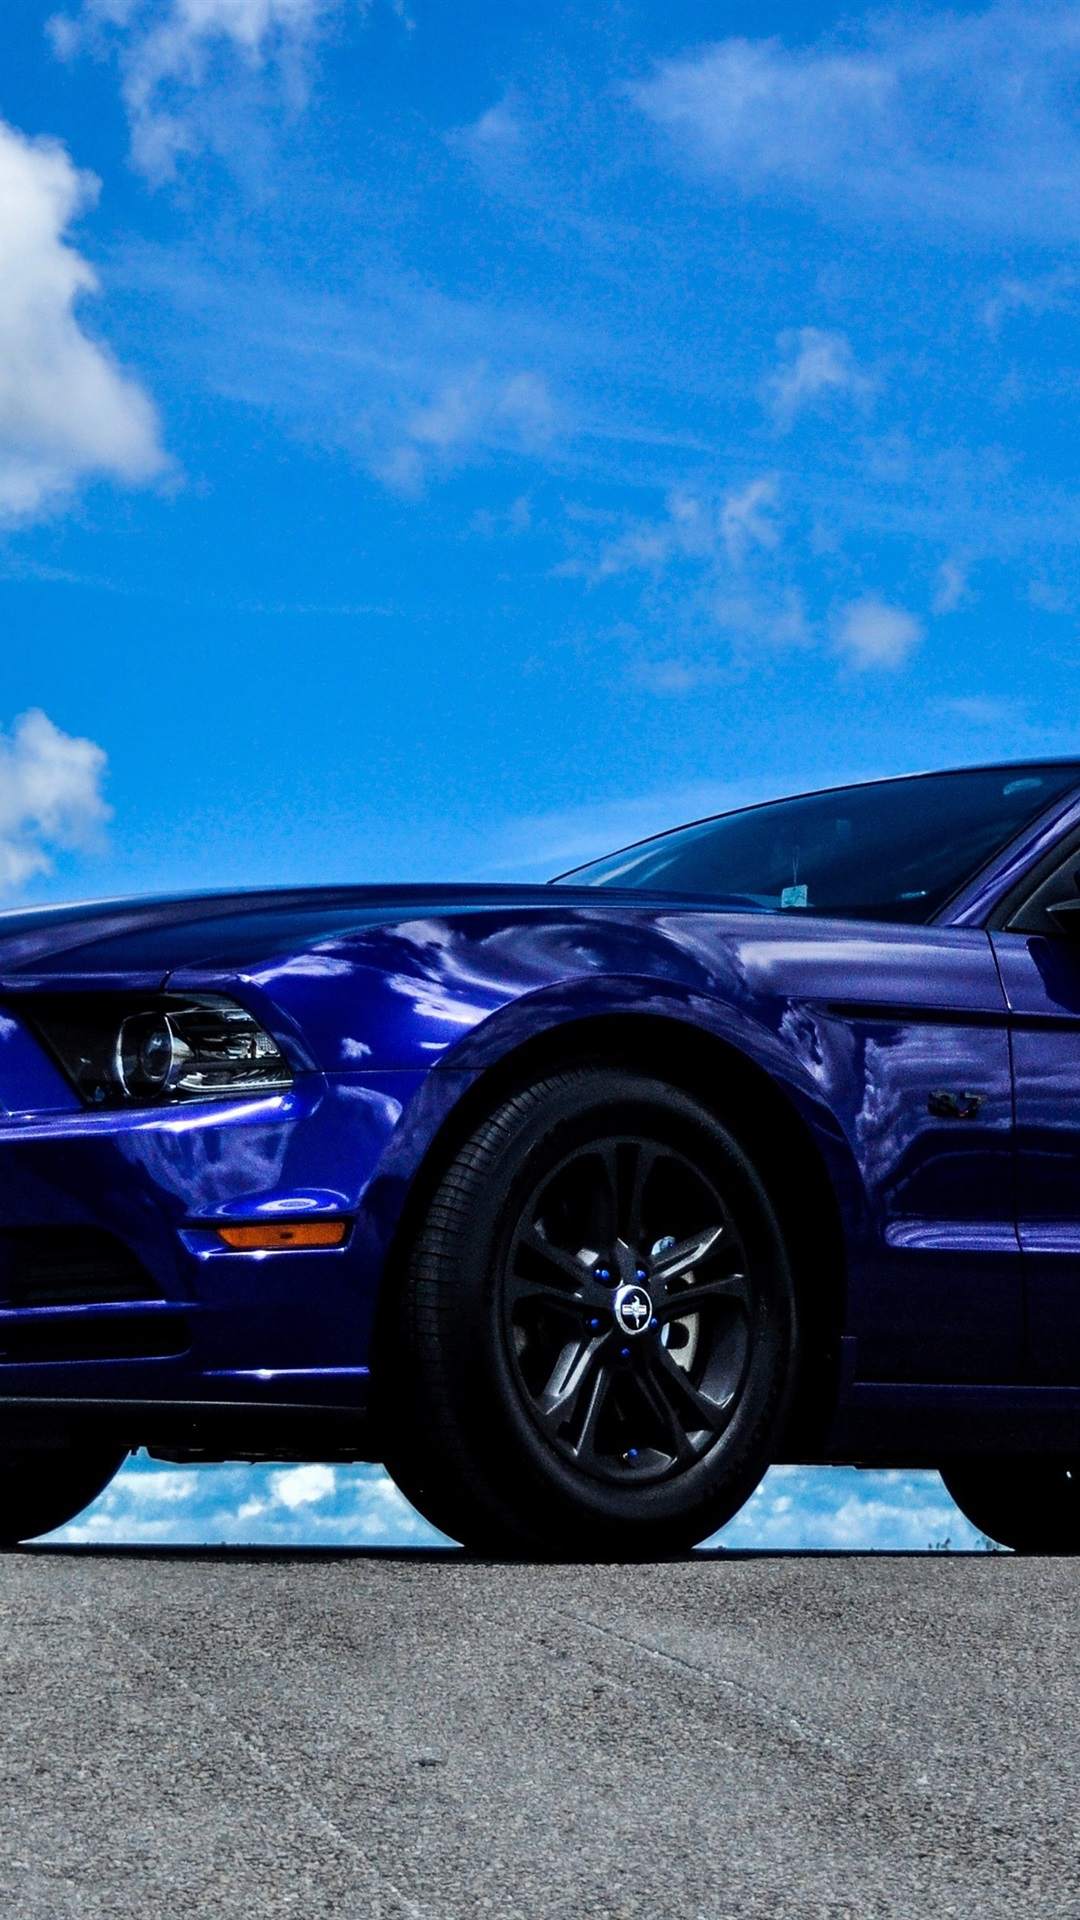 Iphone Wallpaper Ford Mustang Blue Car Side View Ford Mustang 1080x1920 Wallpaper Teahub Io